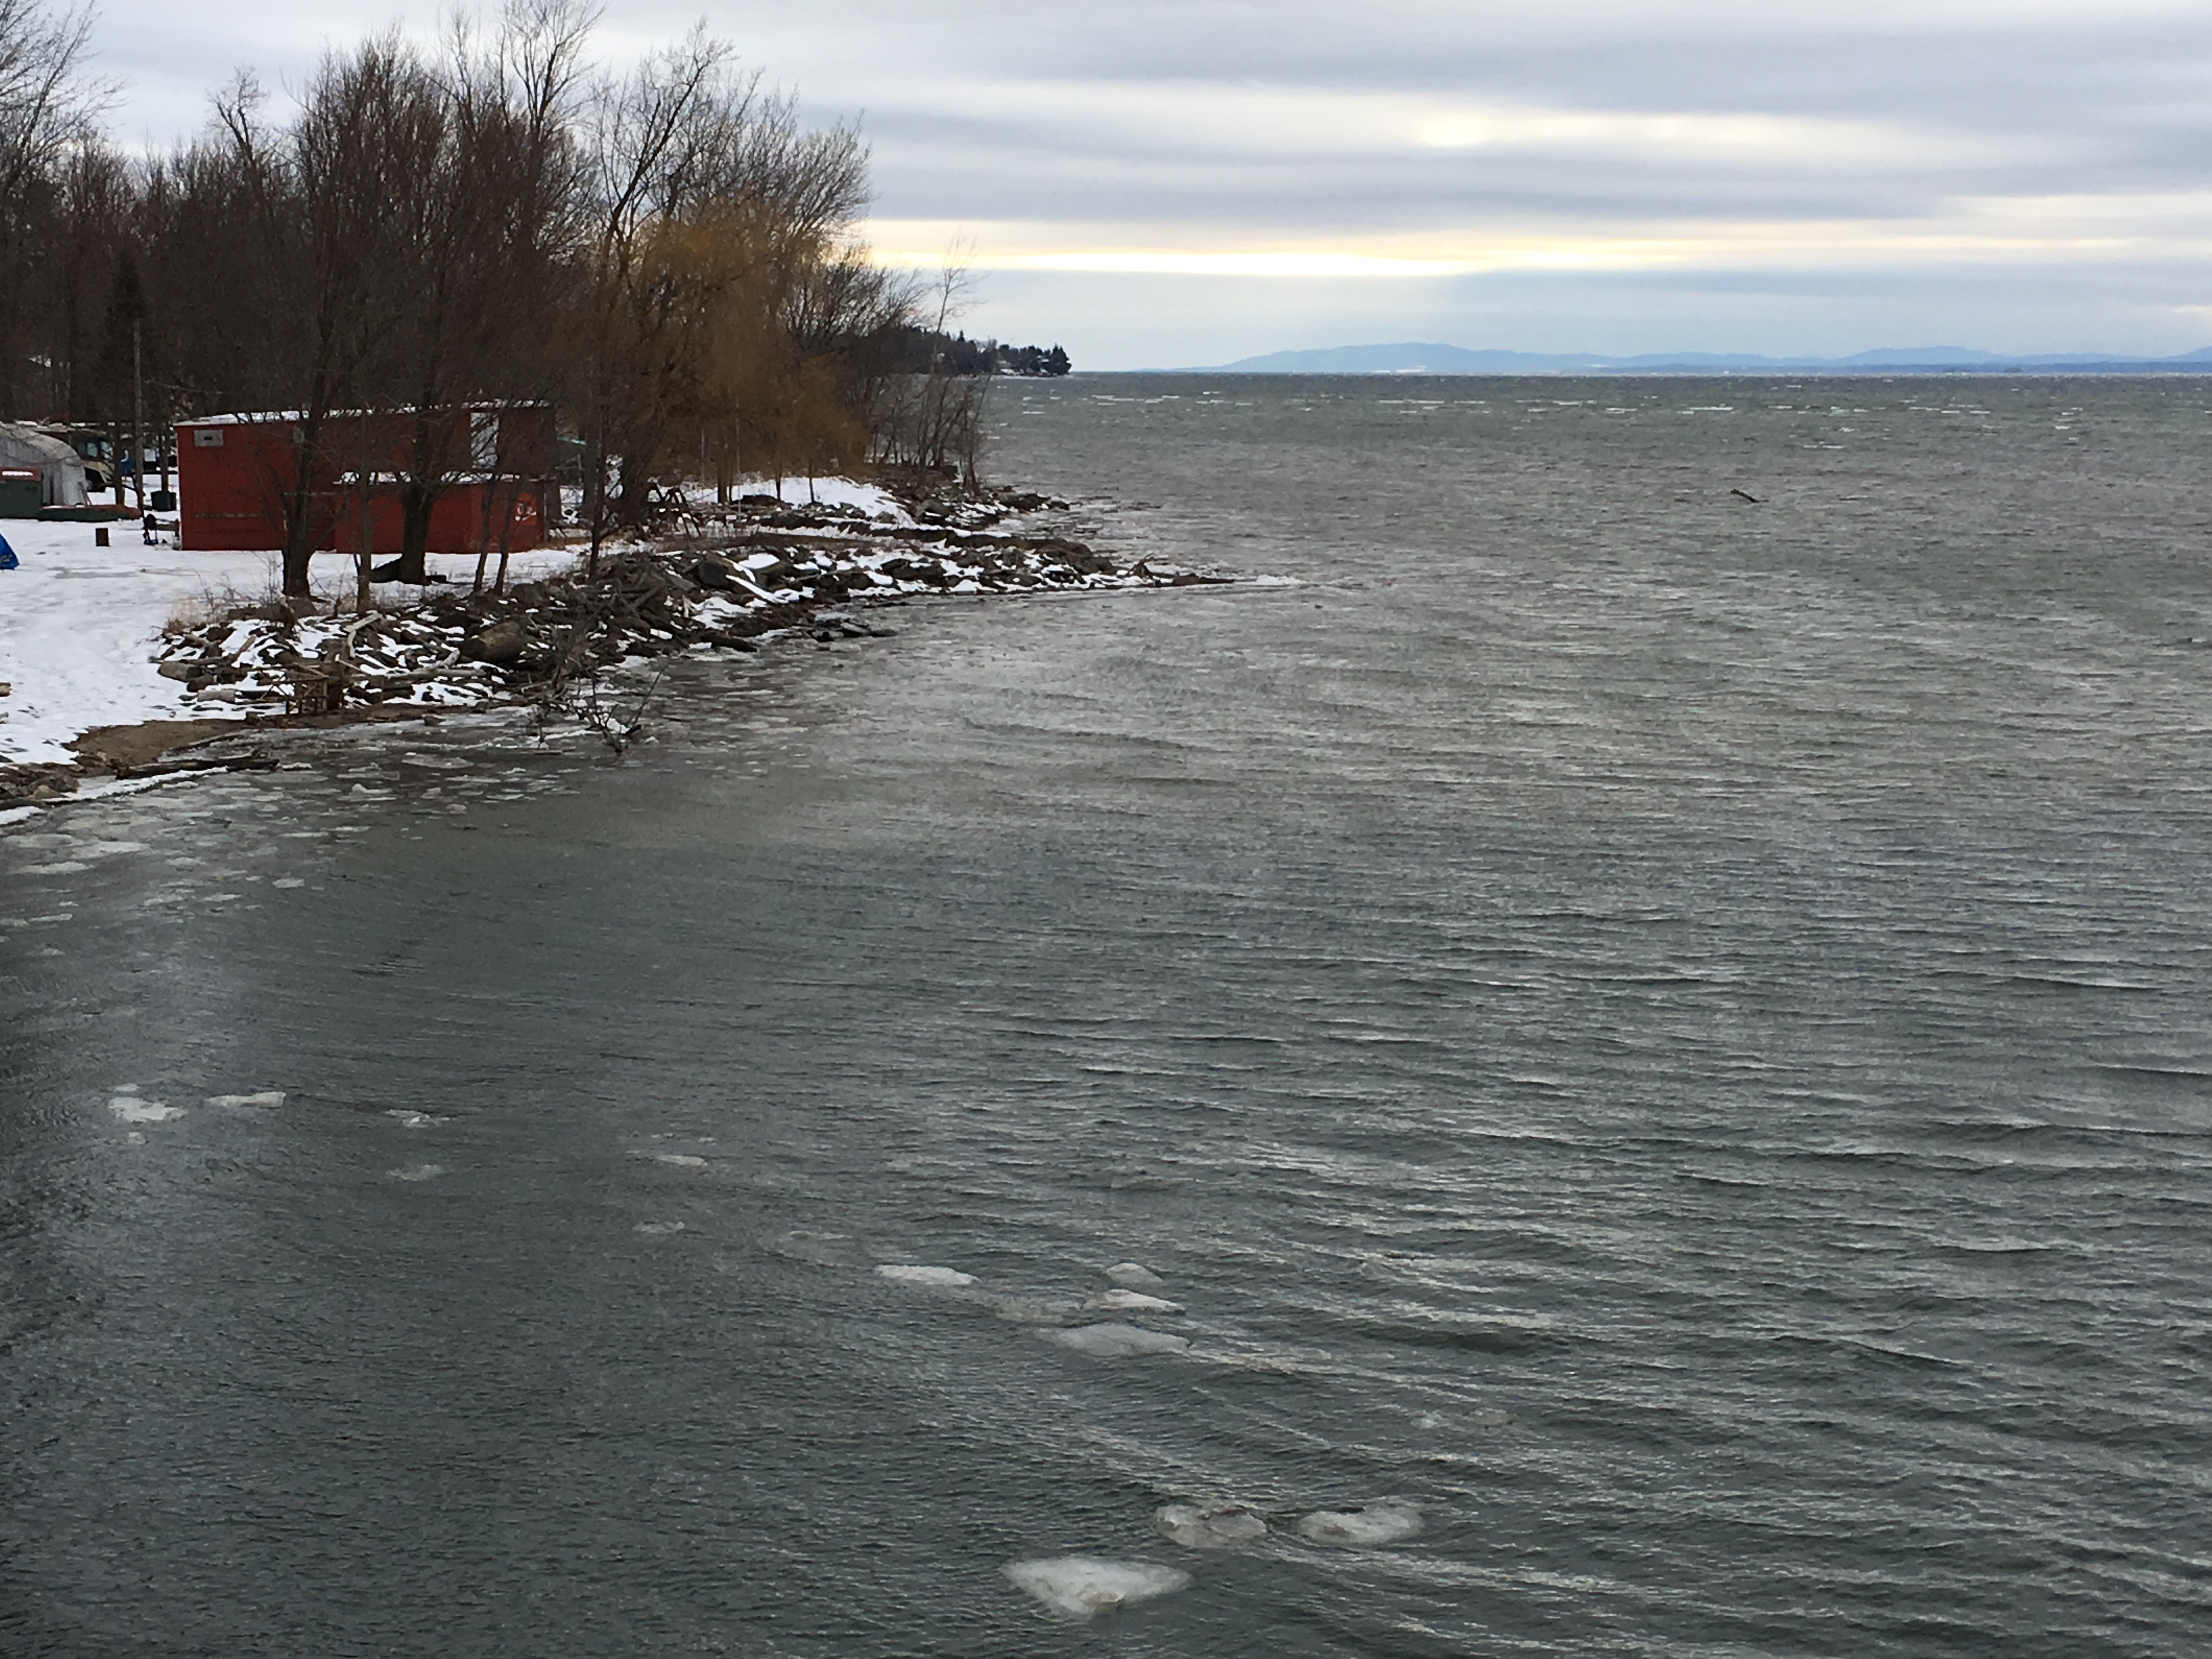 Winooski River flowing into Lake Champlain